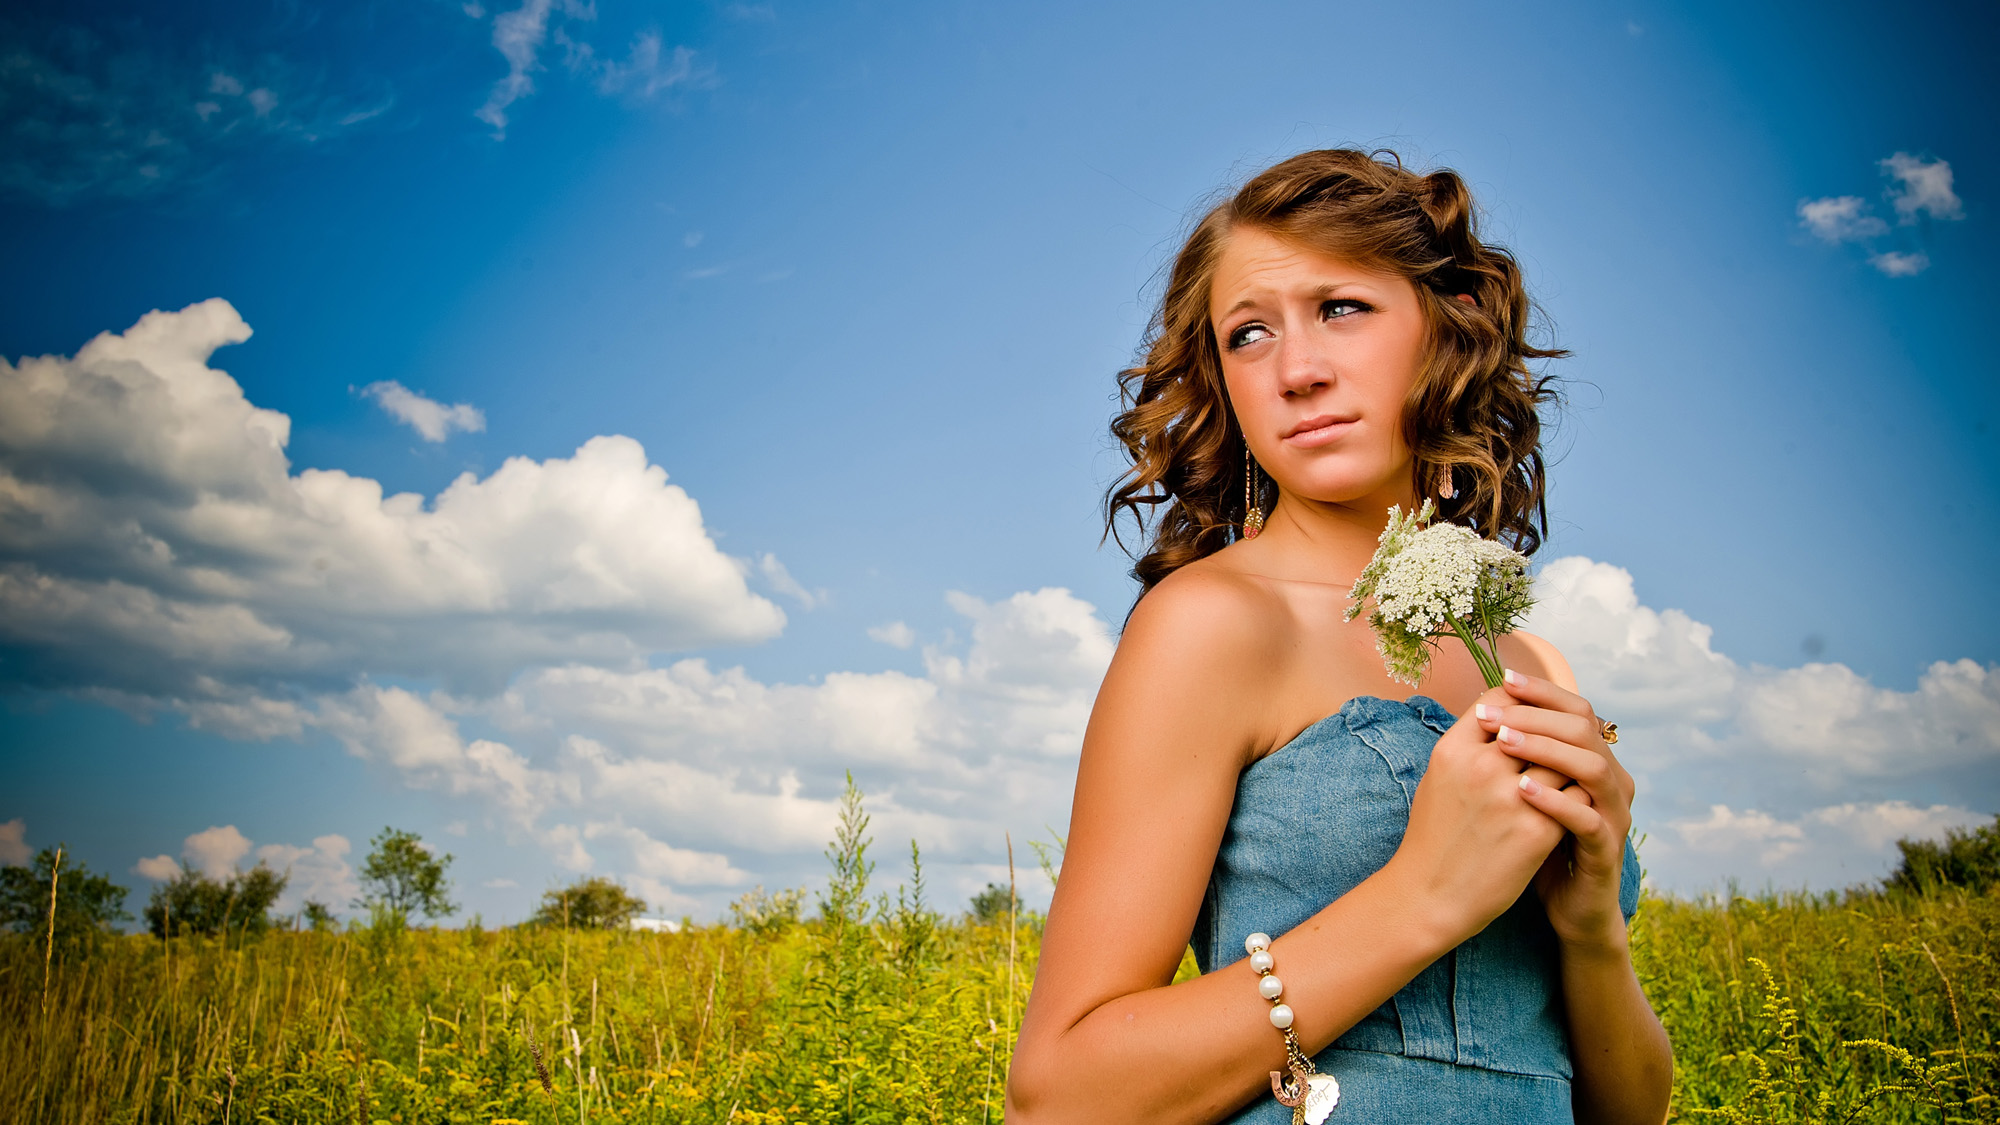 Laurel Highlands Senior Pictures by Tony Urban Photography Somerset PA